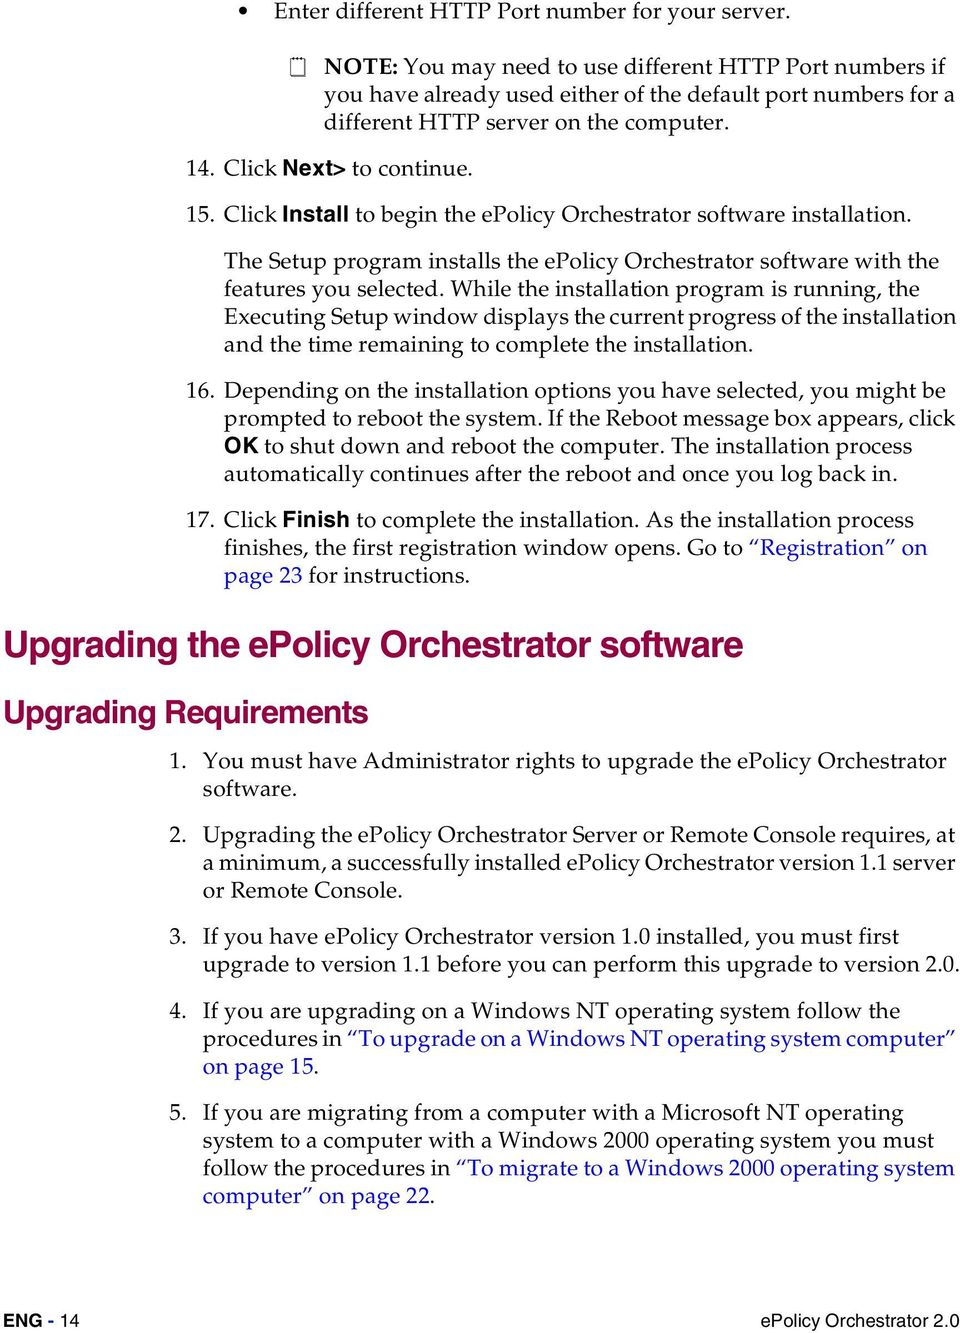 Click Install to begin the epolicy Orchestrator software installation. The Setup program installs the epolicy Orchestrator software with the features you selected.